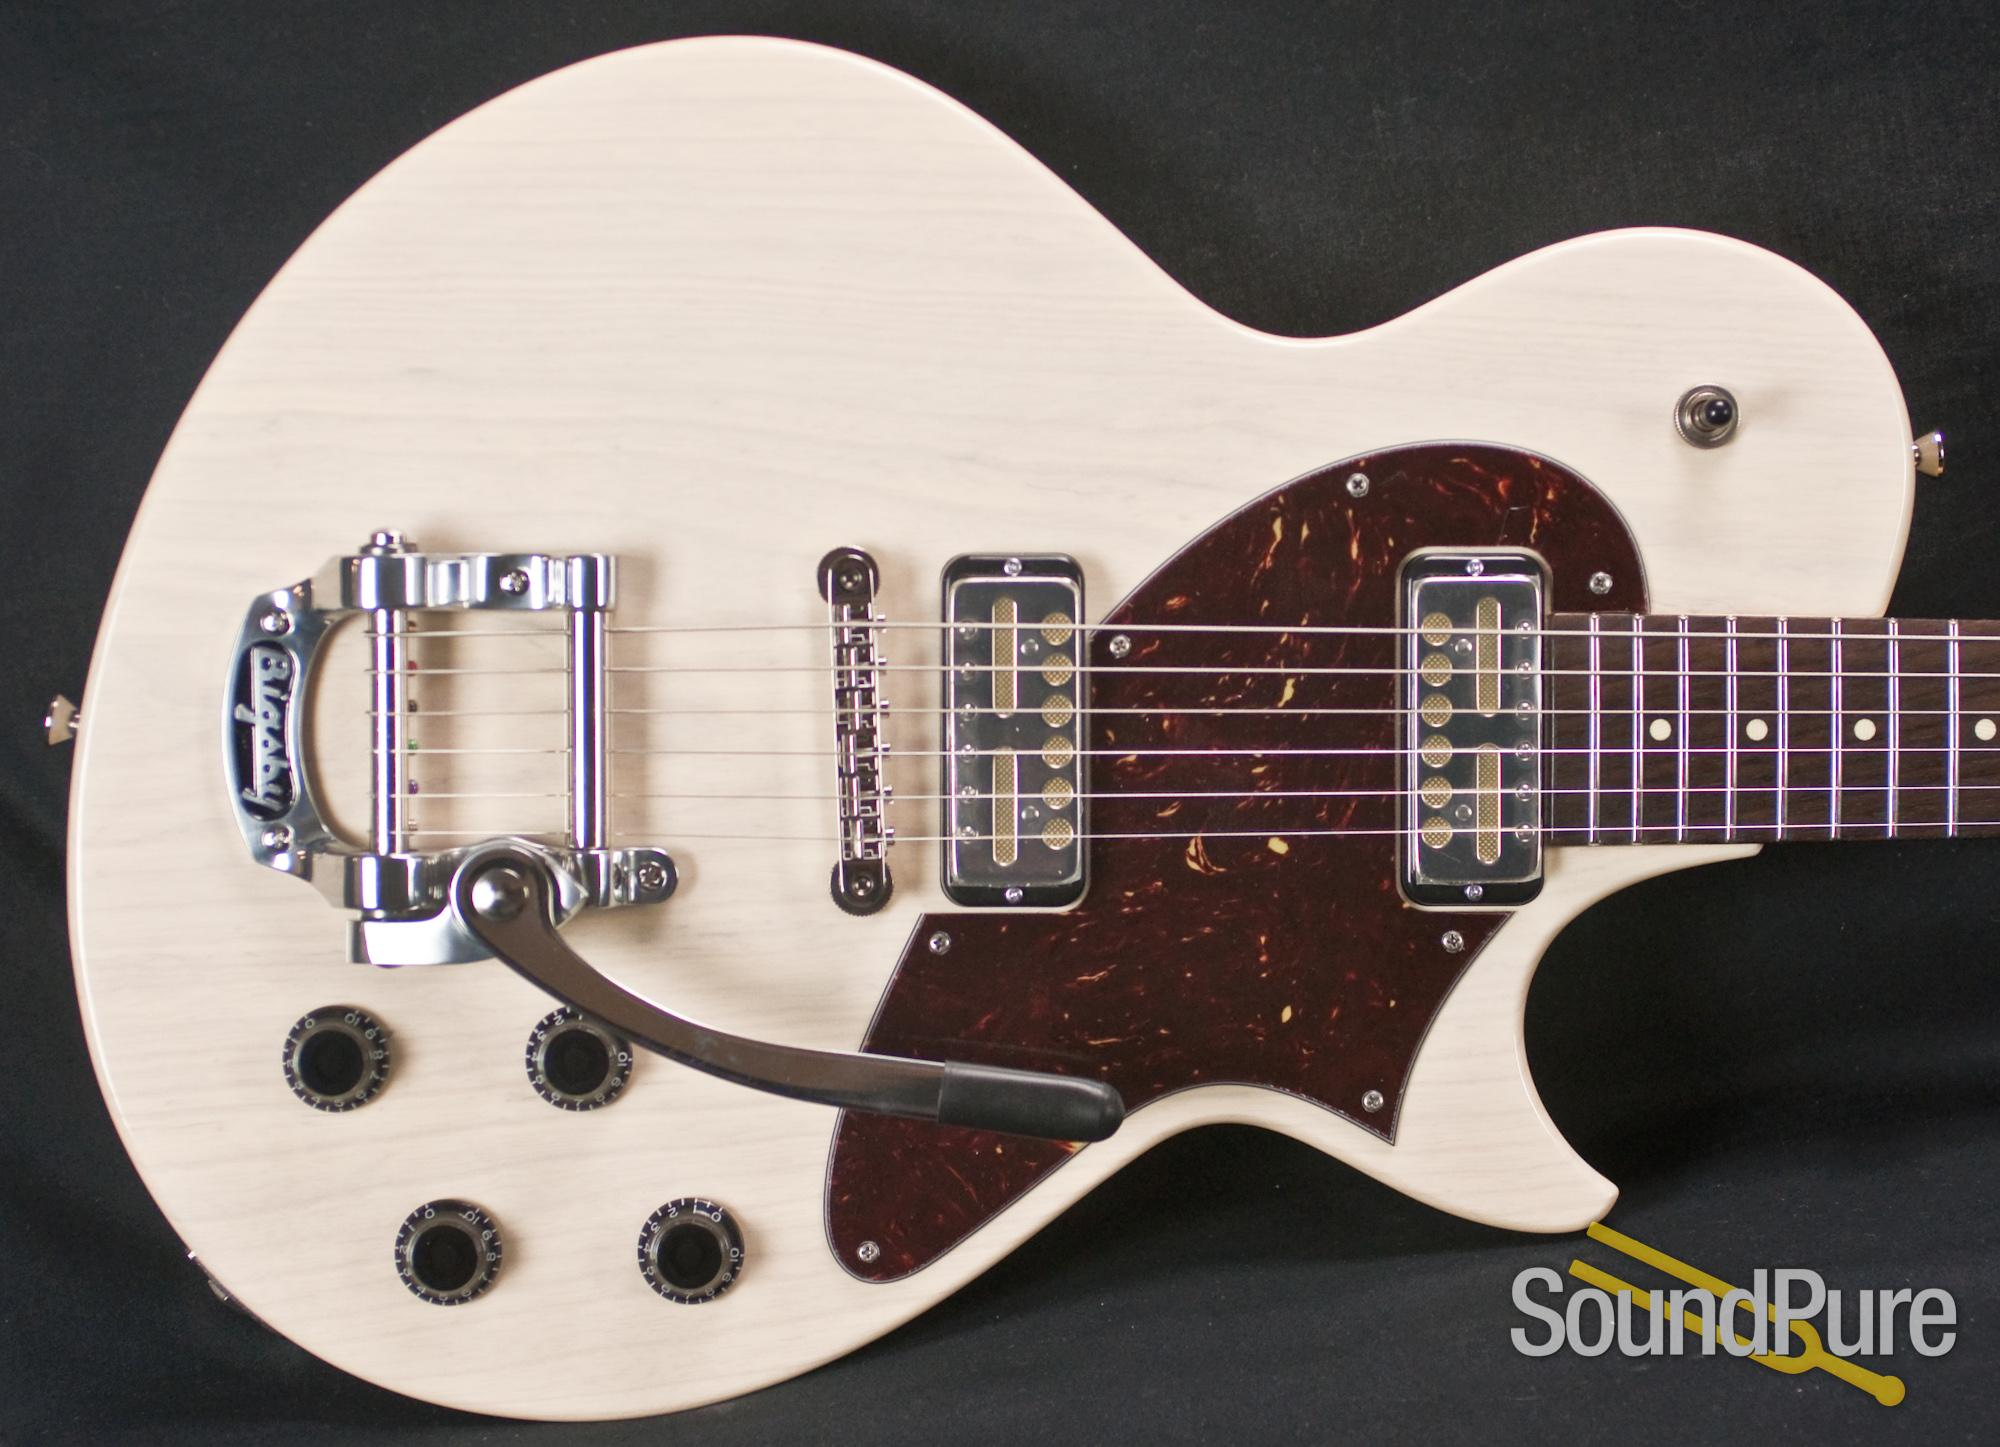 Collings 360 LT Warm White Electric Guitar With Bigsby